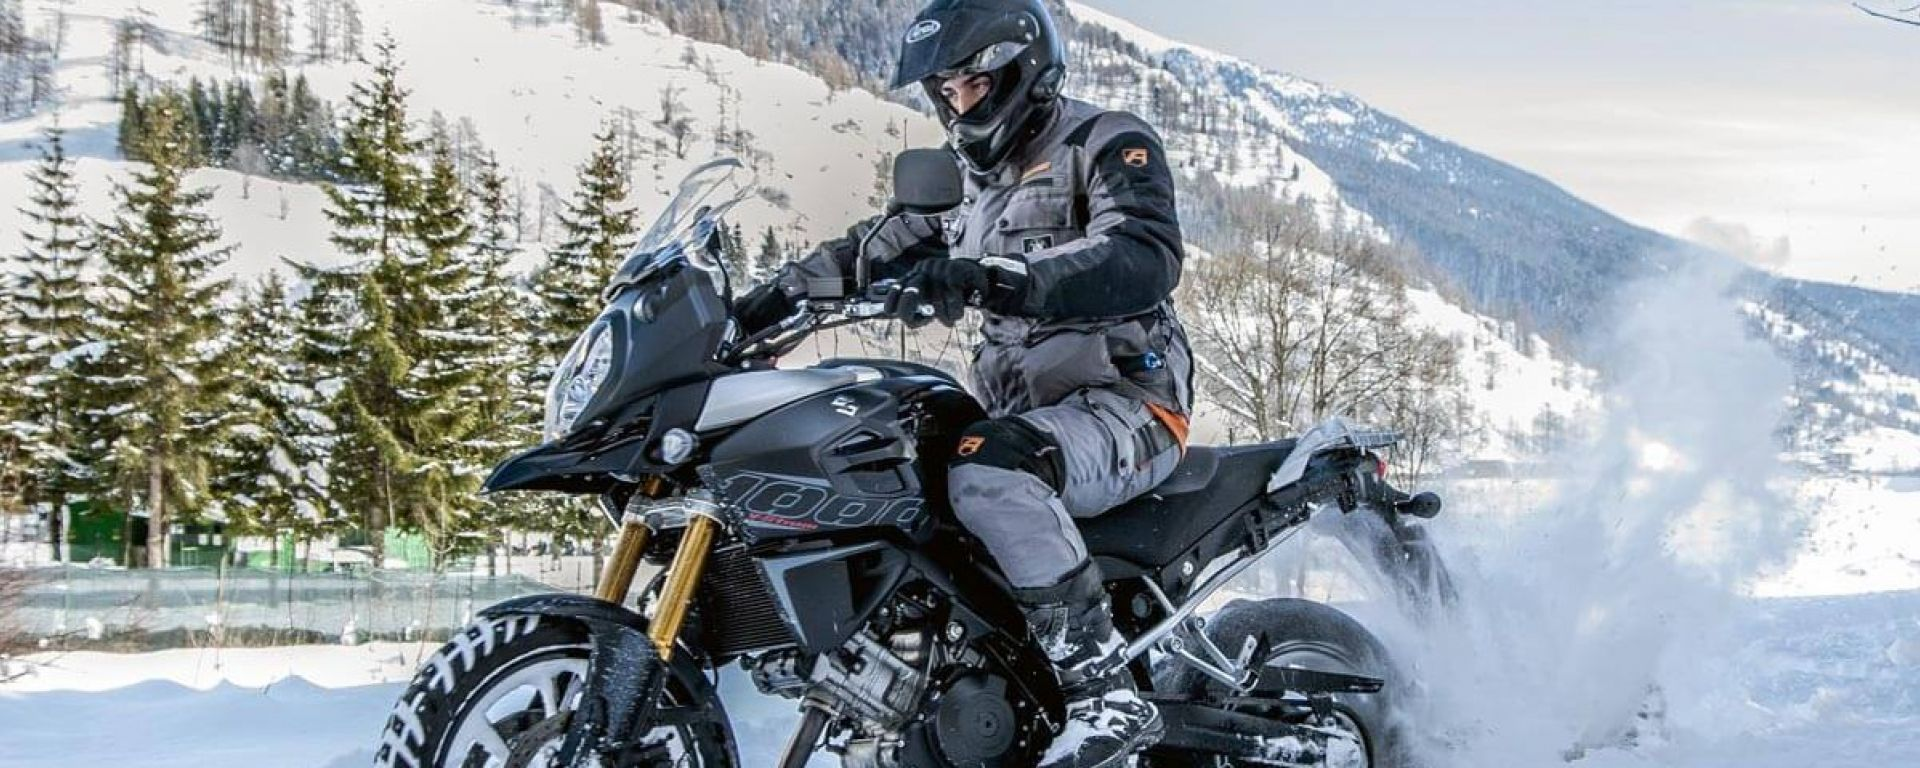 Guidare la moto in inverno